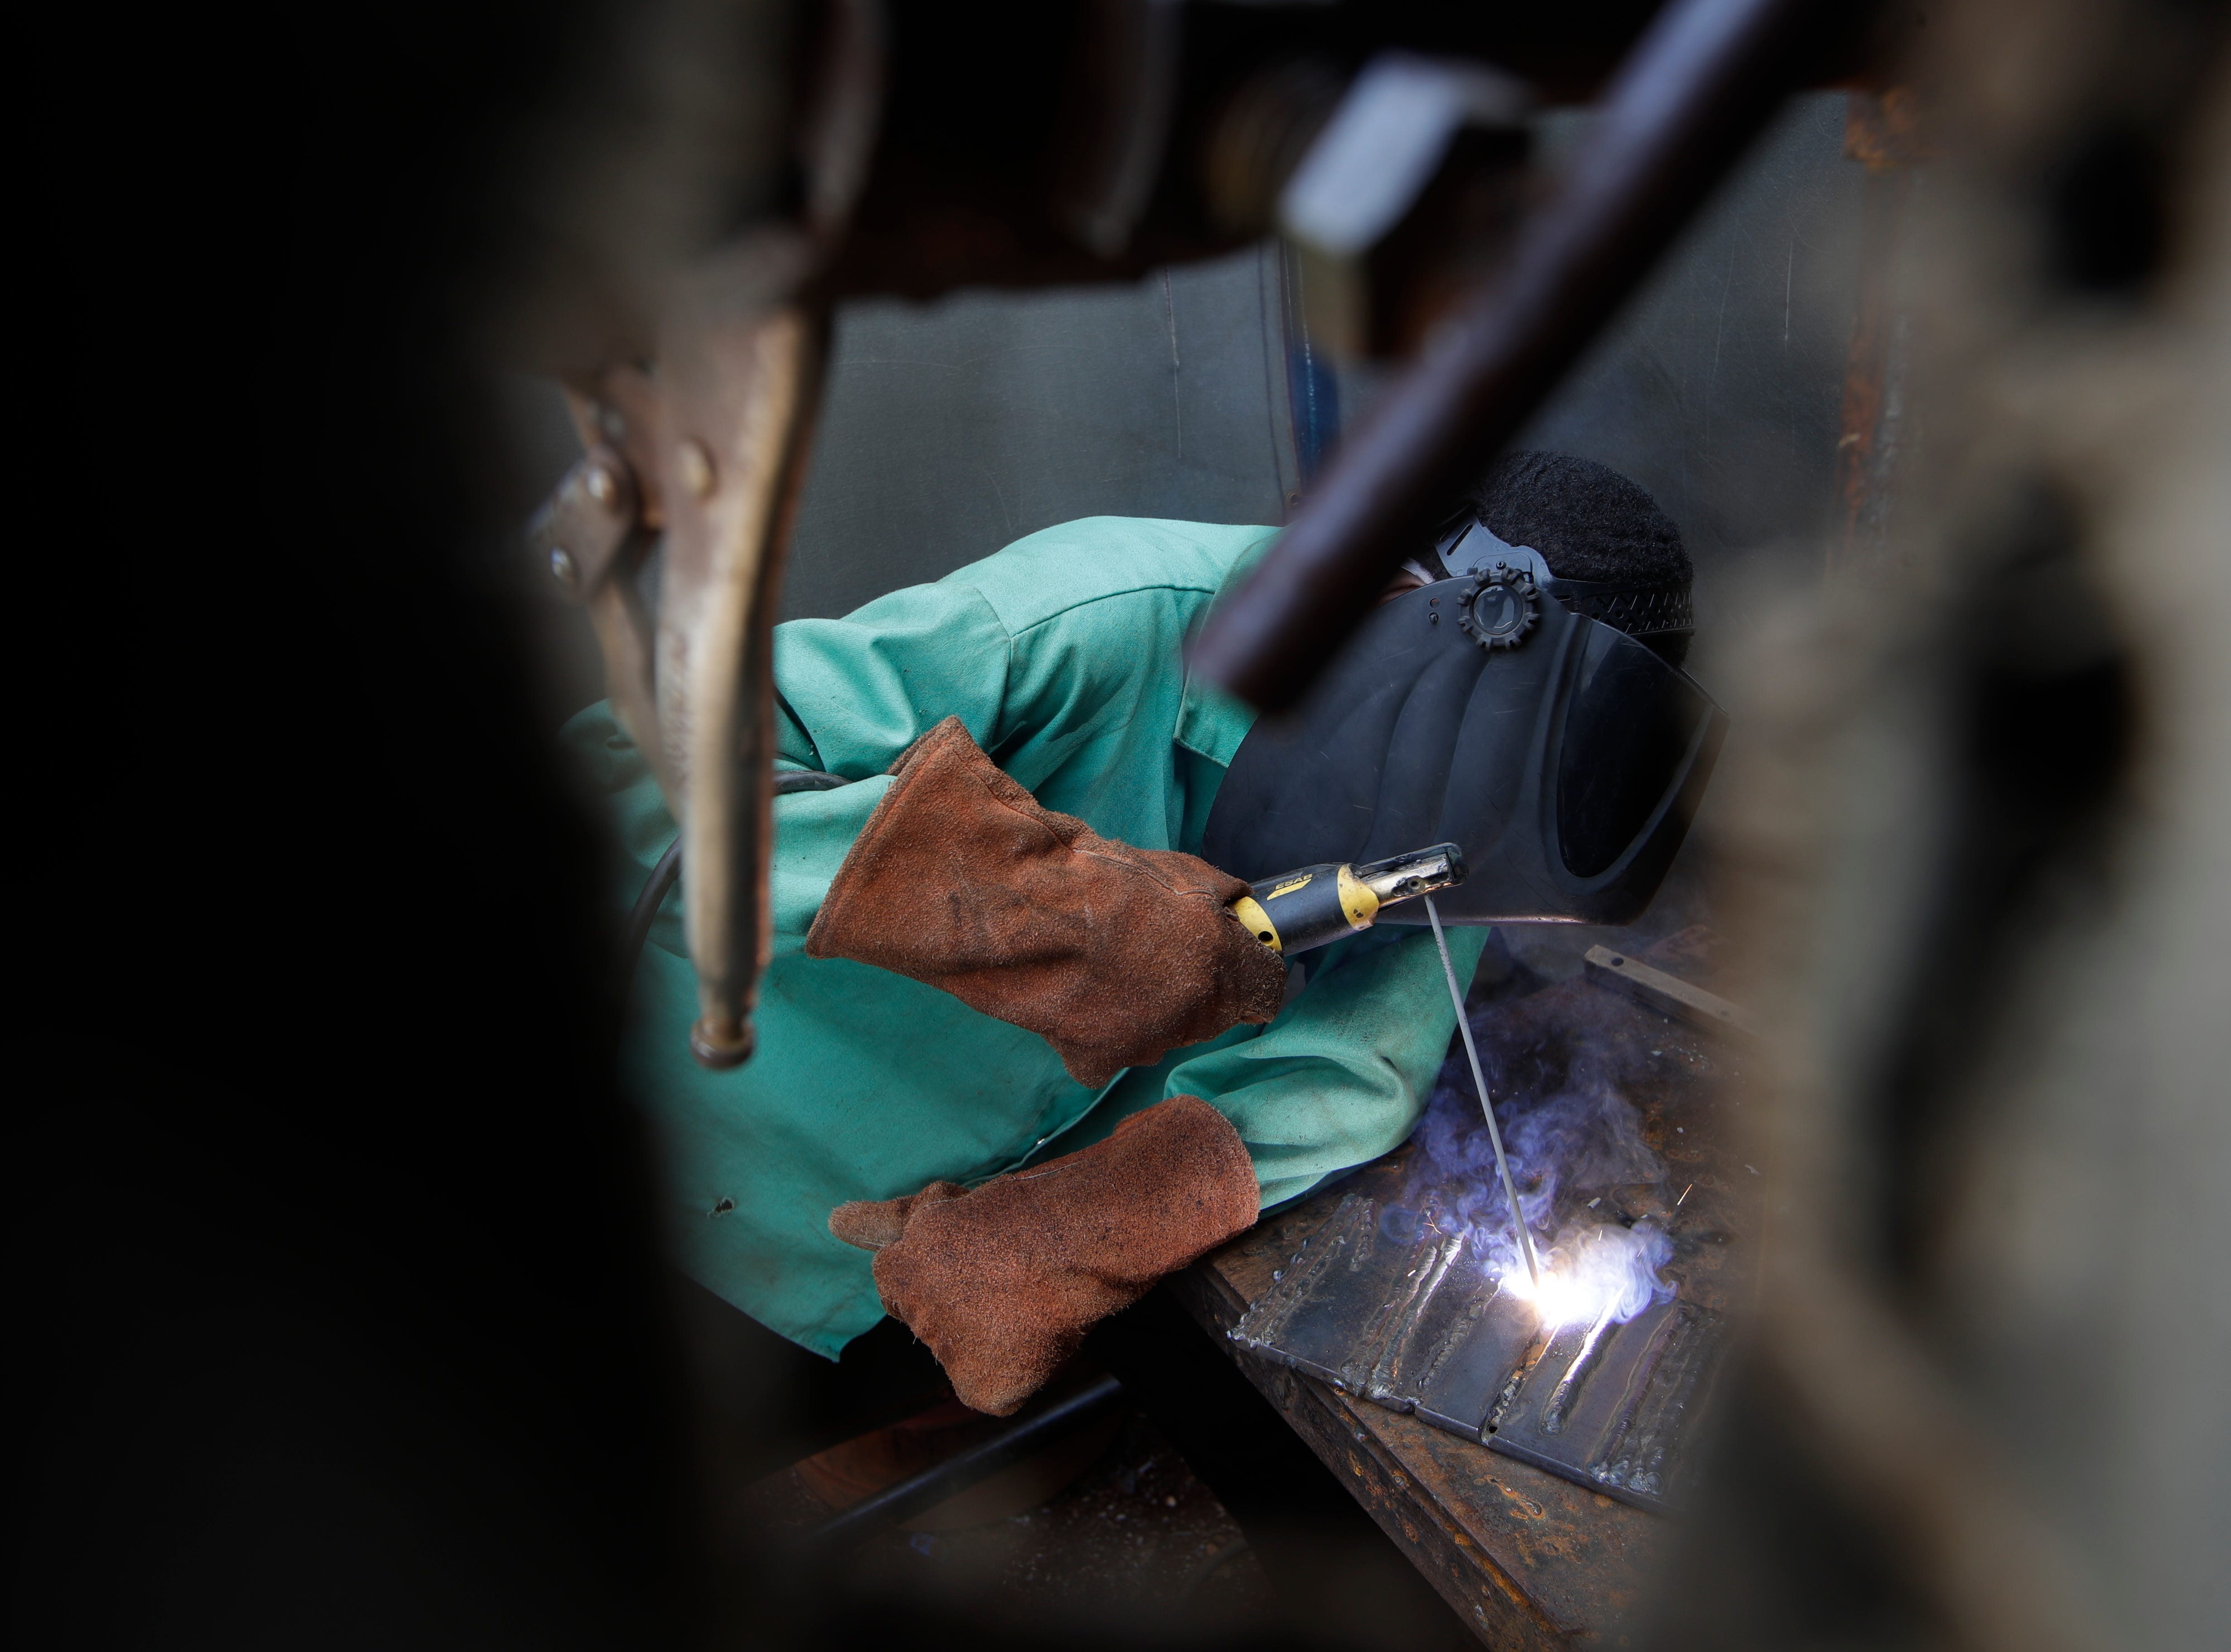 Clarence Lovett, 15, a Godby High School student, practices welding during class Tuesday, Feb. 5, 2019.